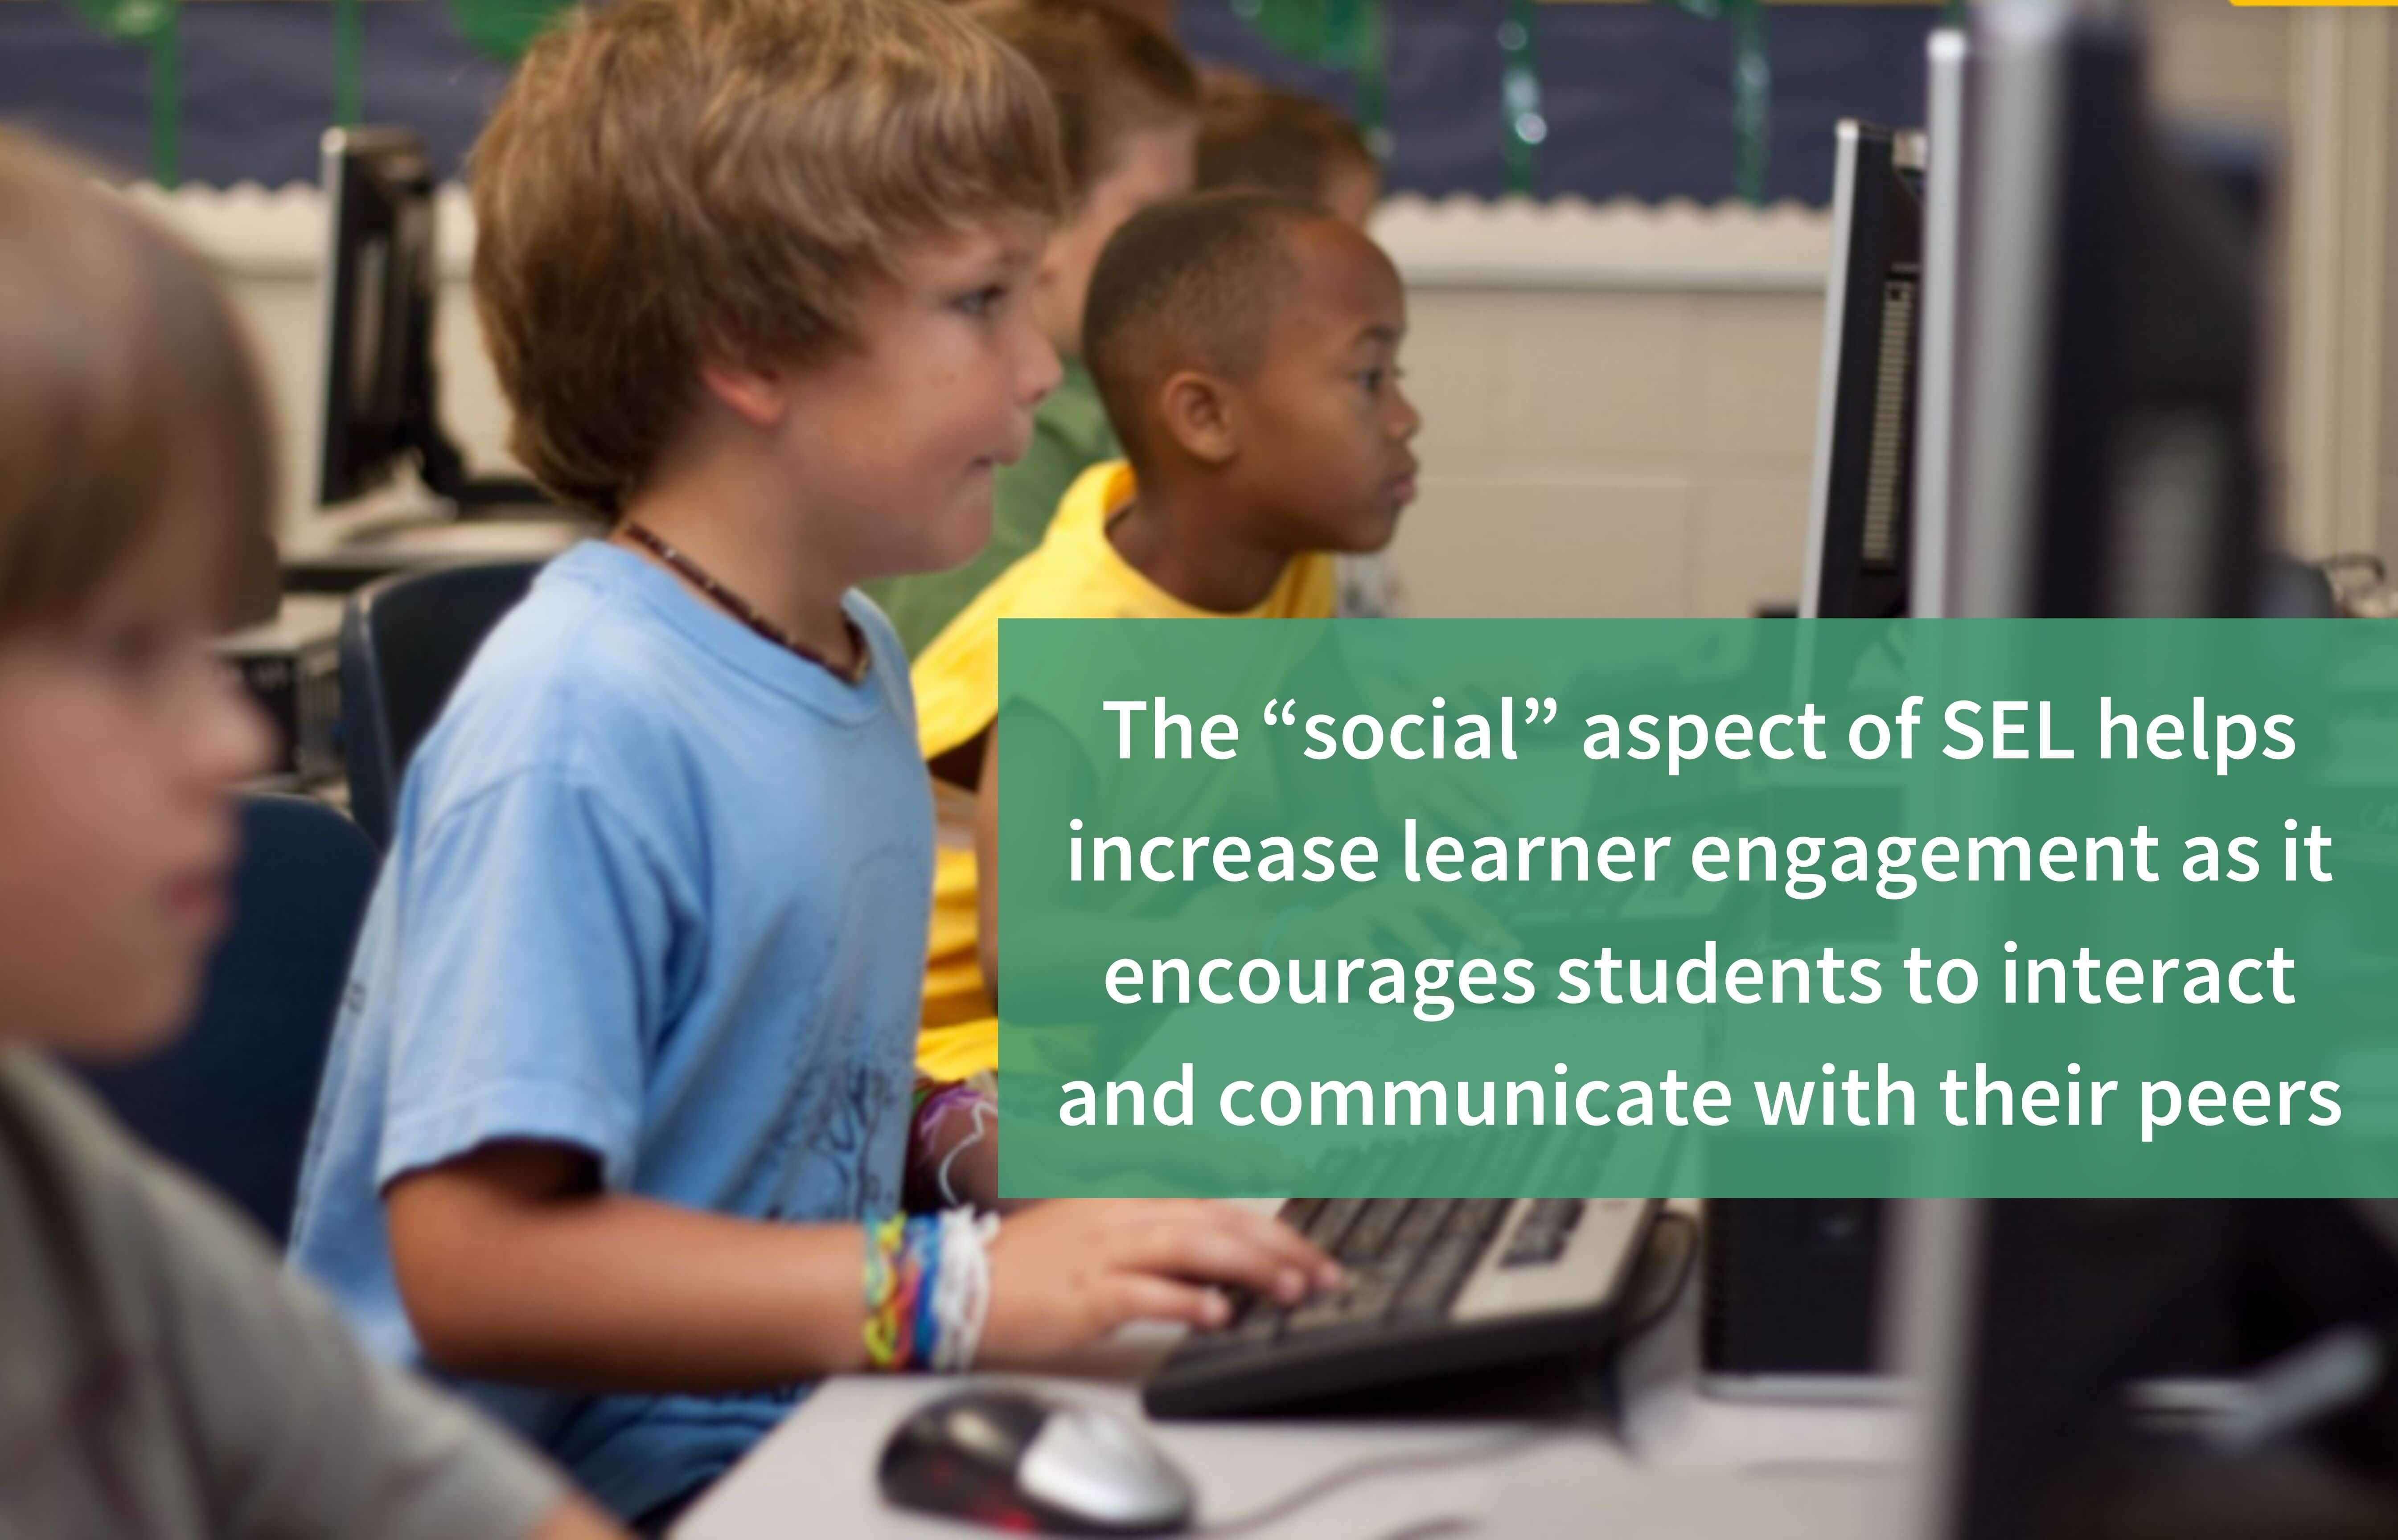 Teachers can integrate SEL to increase engagement in online learning for students